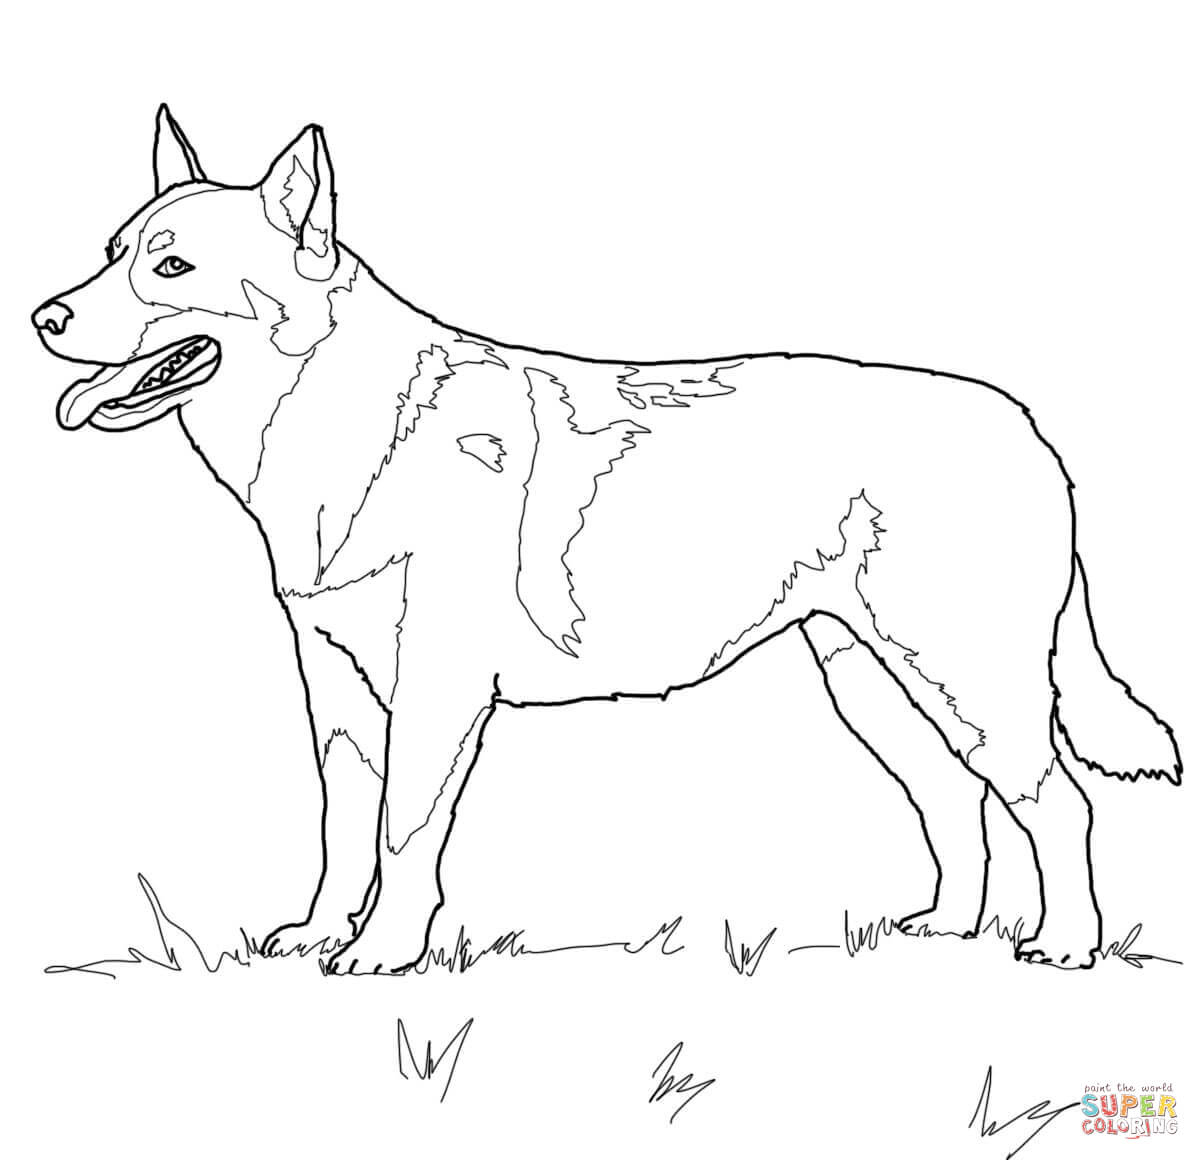 Australian Cattle Dog Coloring Page   Free Printable Coloring Pages - Free Printable Dog Coloring Pages